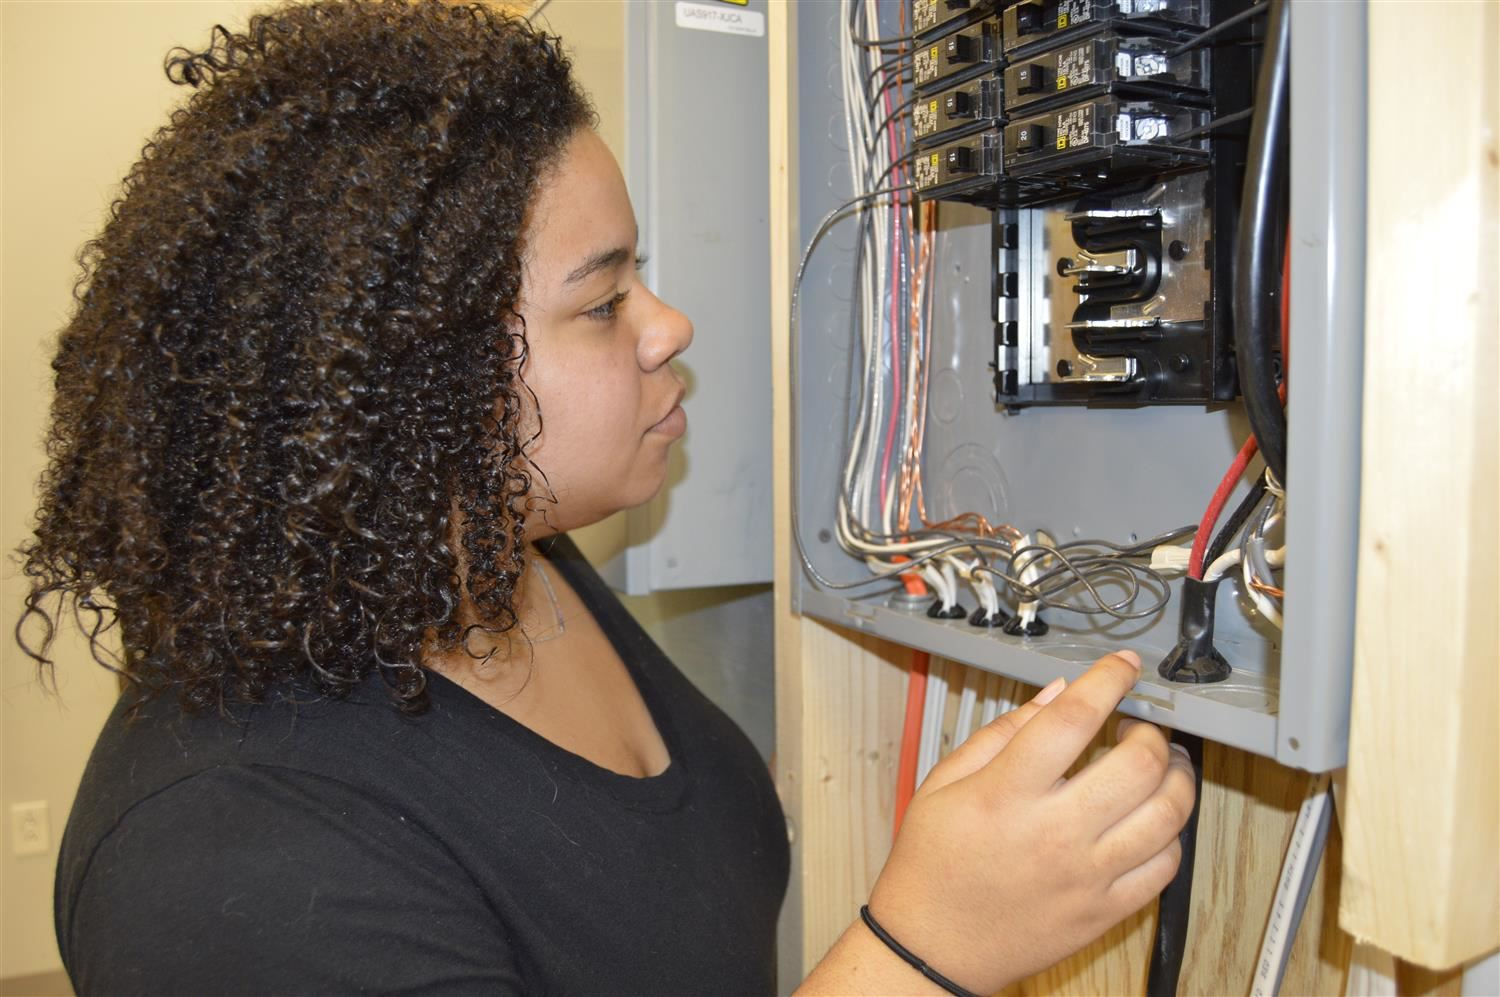 Student working on electrical panel